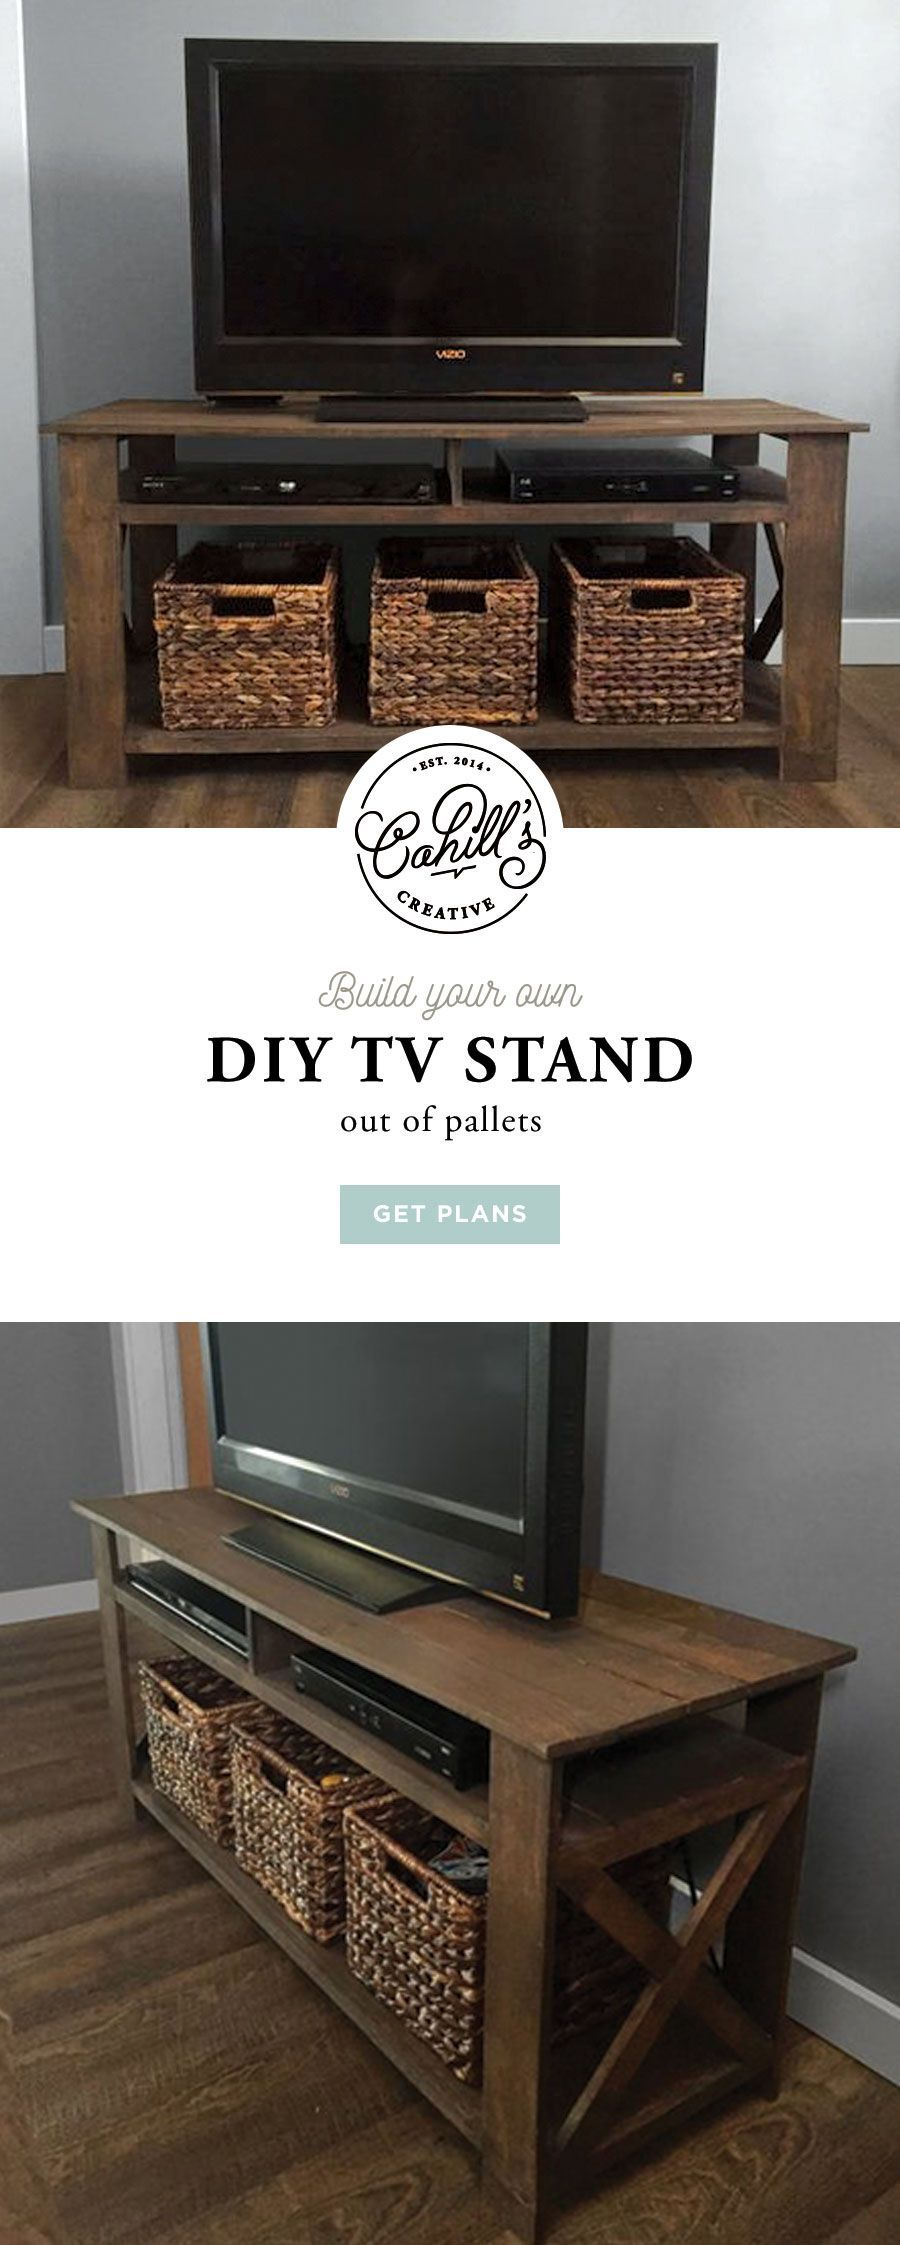 50+ Creative Diy Tv Stand Ideas For Your Room Interior | Diy Throughout Marvin Rustic Natural 60 Inch Tv Stands (View 10 of 30)